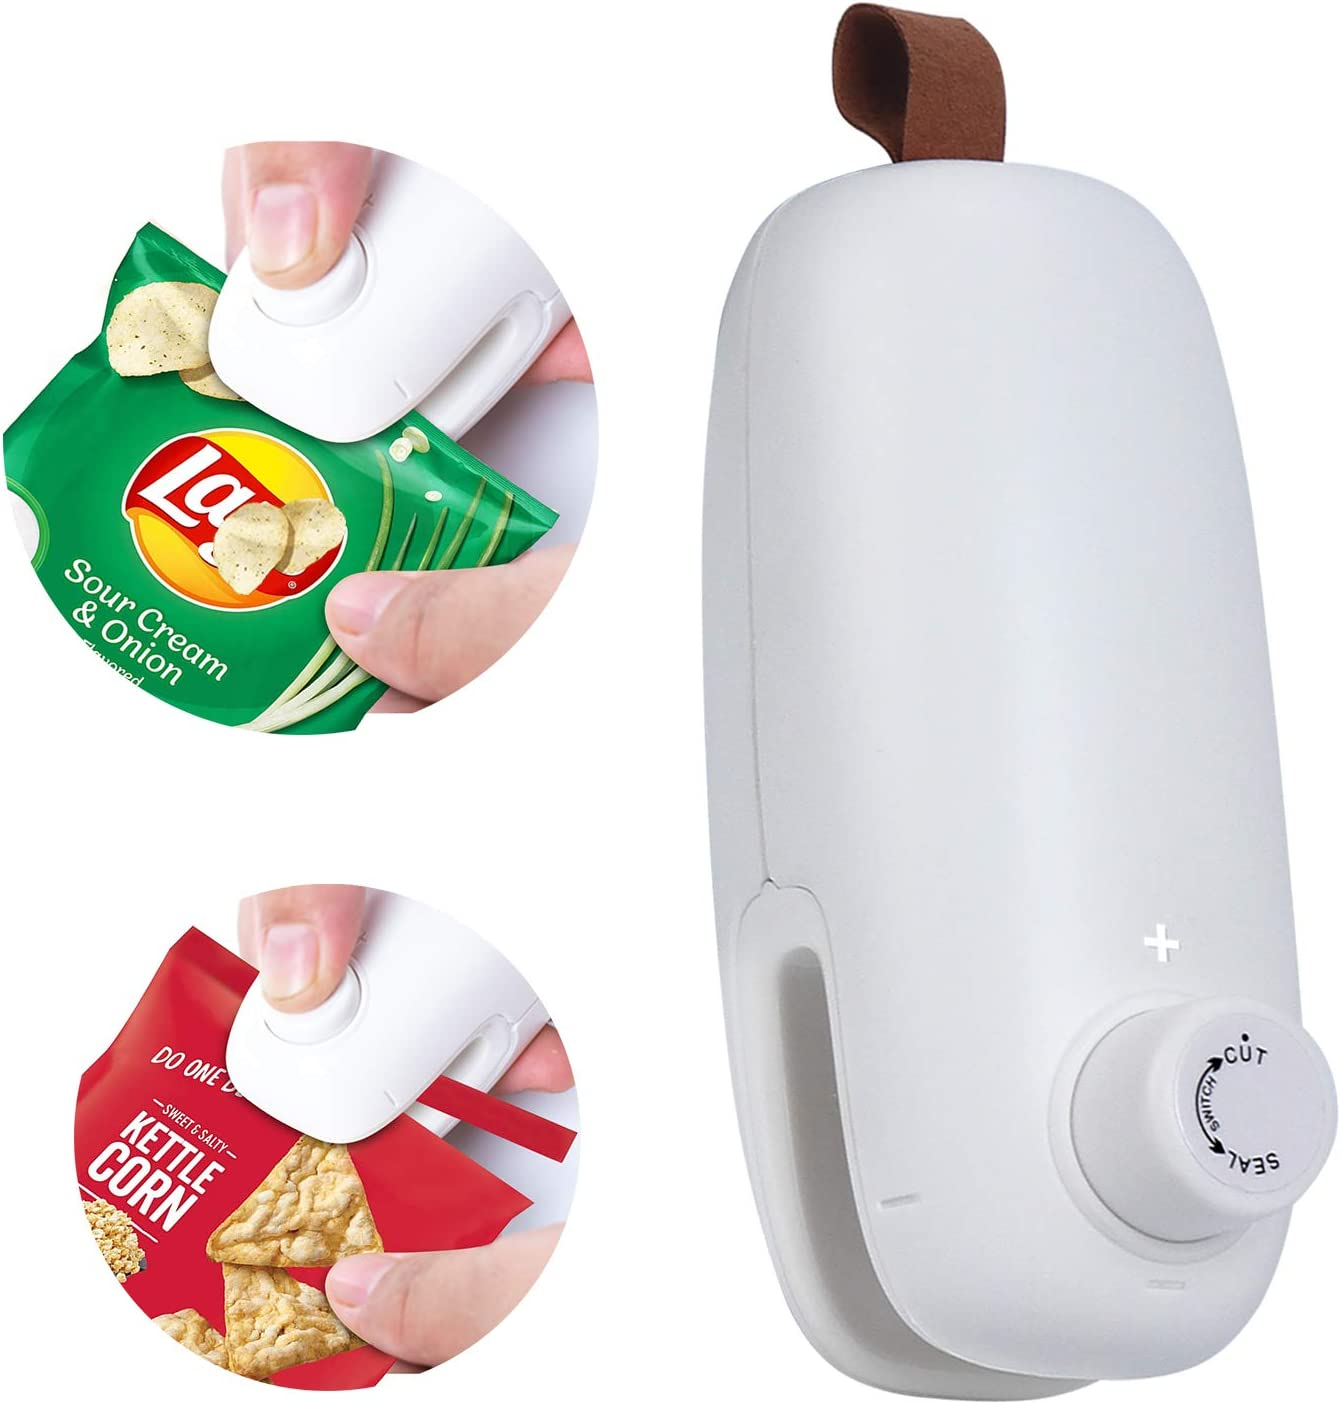 Chip Bag Sealer Heat Seal, 2 in 1 Mini Portable Sealer and Cutter Handheld Kitchen Sealing Machine for Plastic Bags Food Storage Bag (Battery Not included)